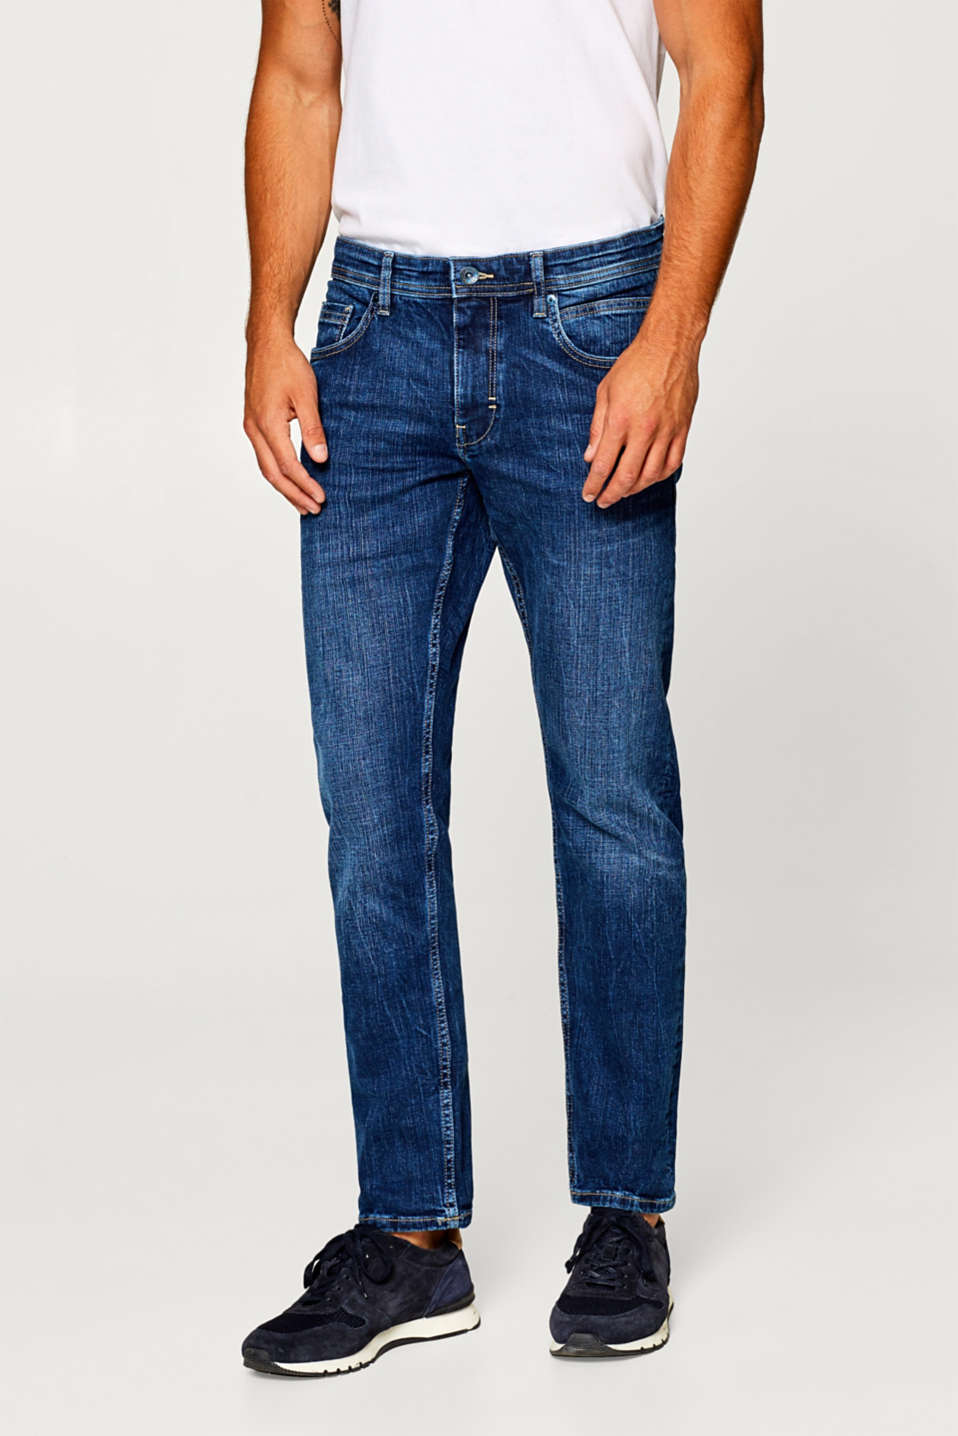 Esprit - Cropped stretch jeans with a garment wash